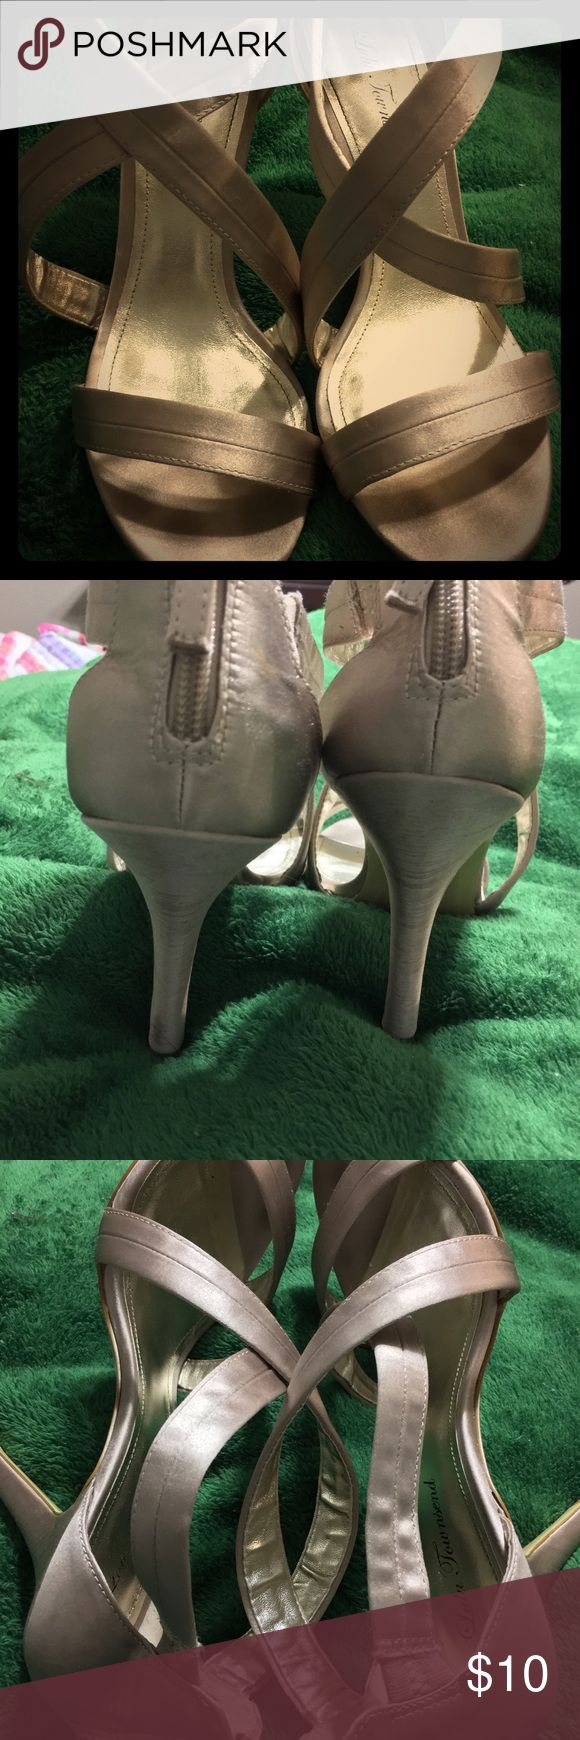 Champagne colored heels size 10 Cute satin dark champagne color shoes. It's a gorgeous neutral. Criss cross design. Worn a few times but in great shape. Zippers up the back. Size 10 Shoes Heels